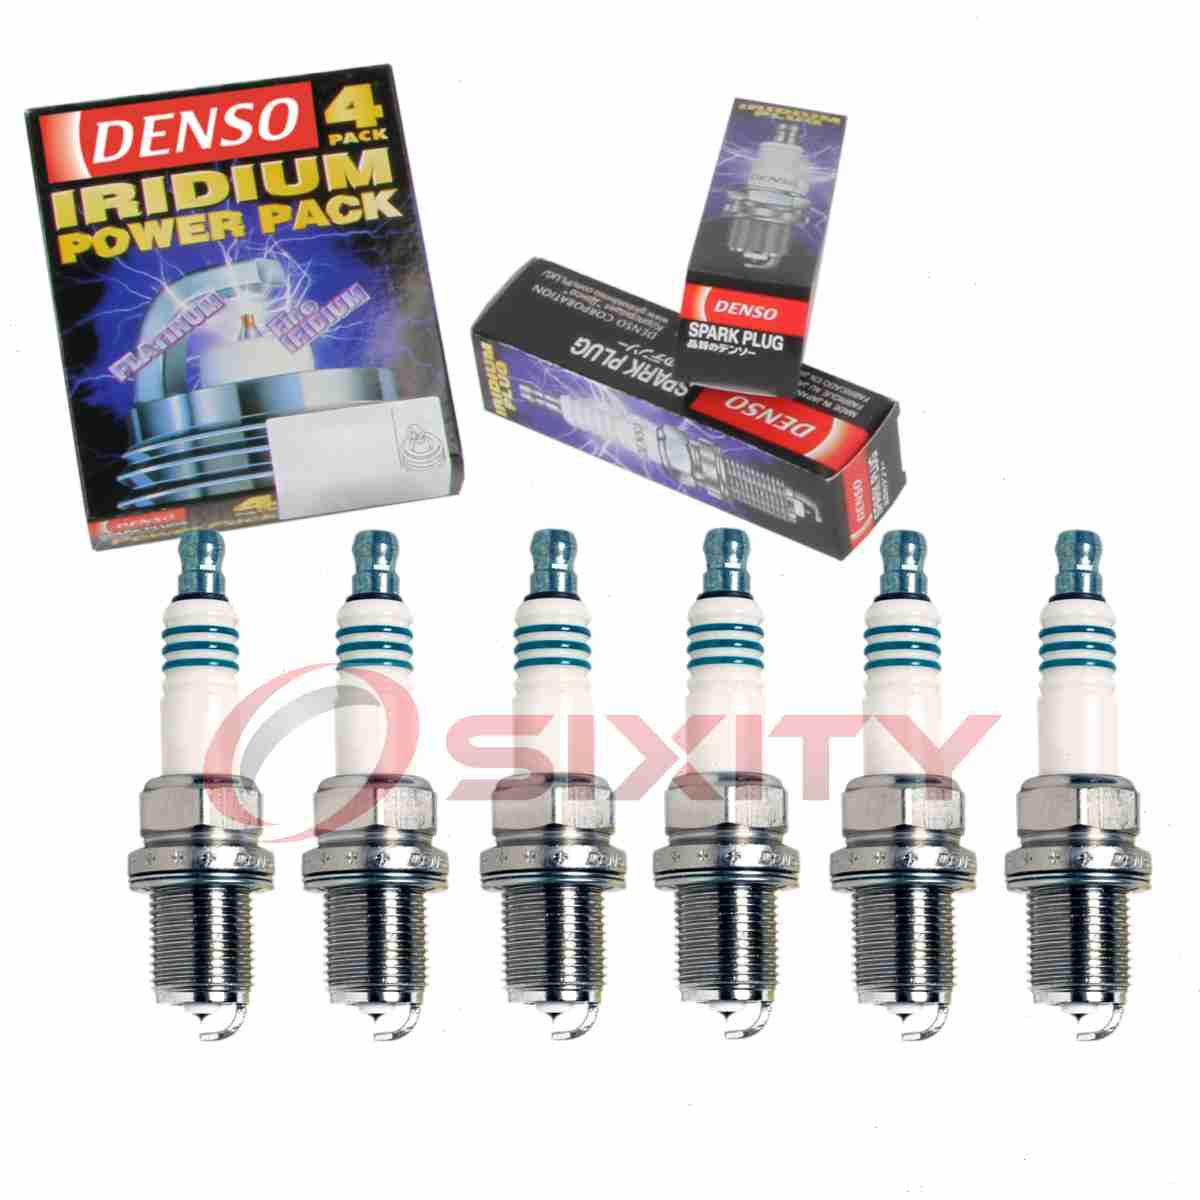 hight resolution of details about 6 pc denso iridium power spark plugs for mazda mpv 3 0l v6 1989 1990 tune up va